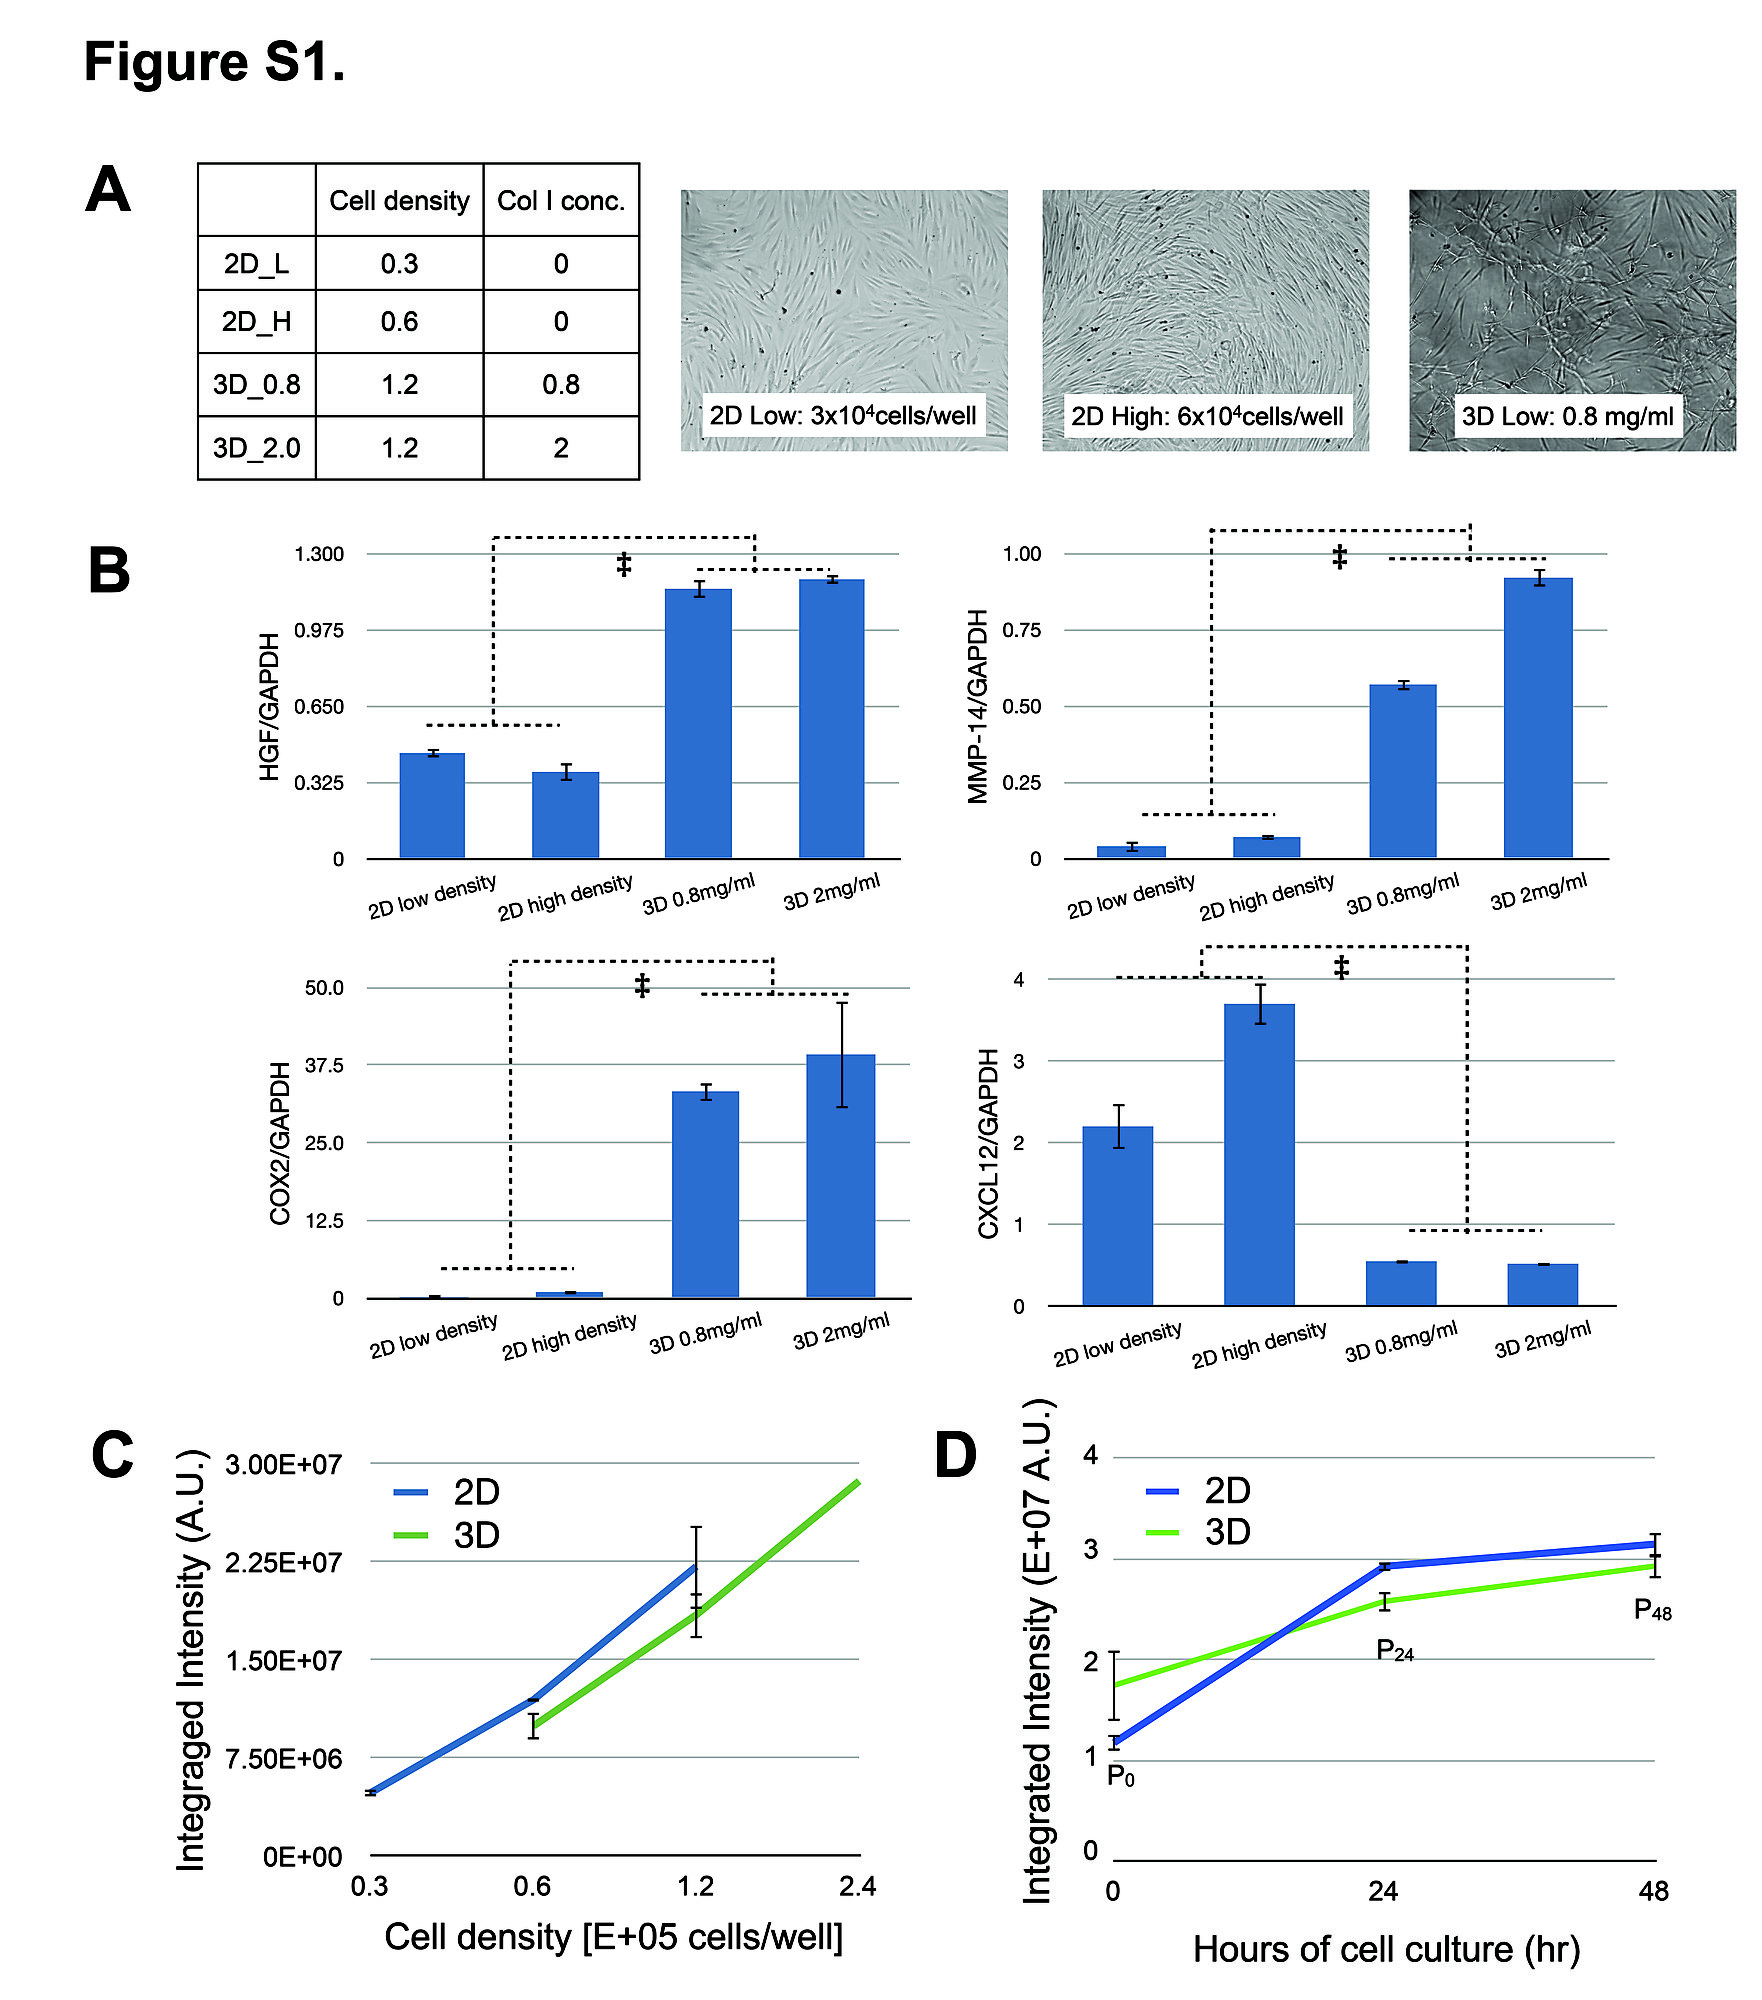 Understanding the Impact of 2D and 3D Fibroblast Cultures on